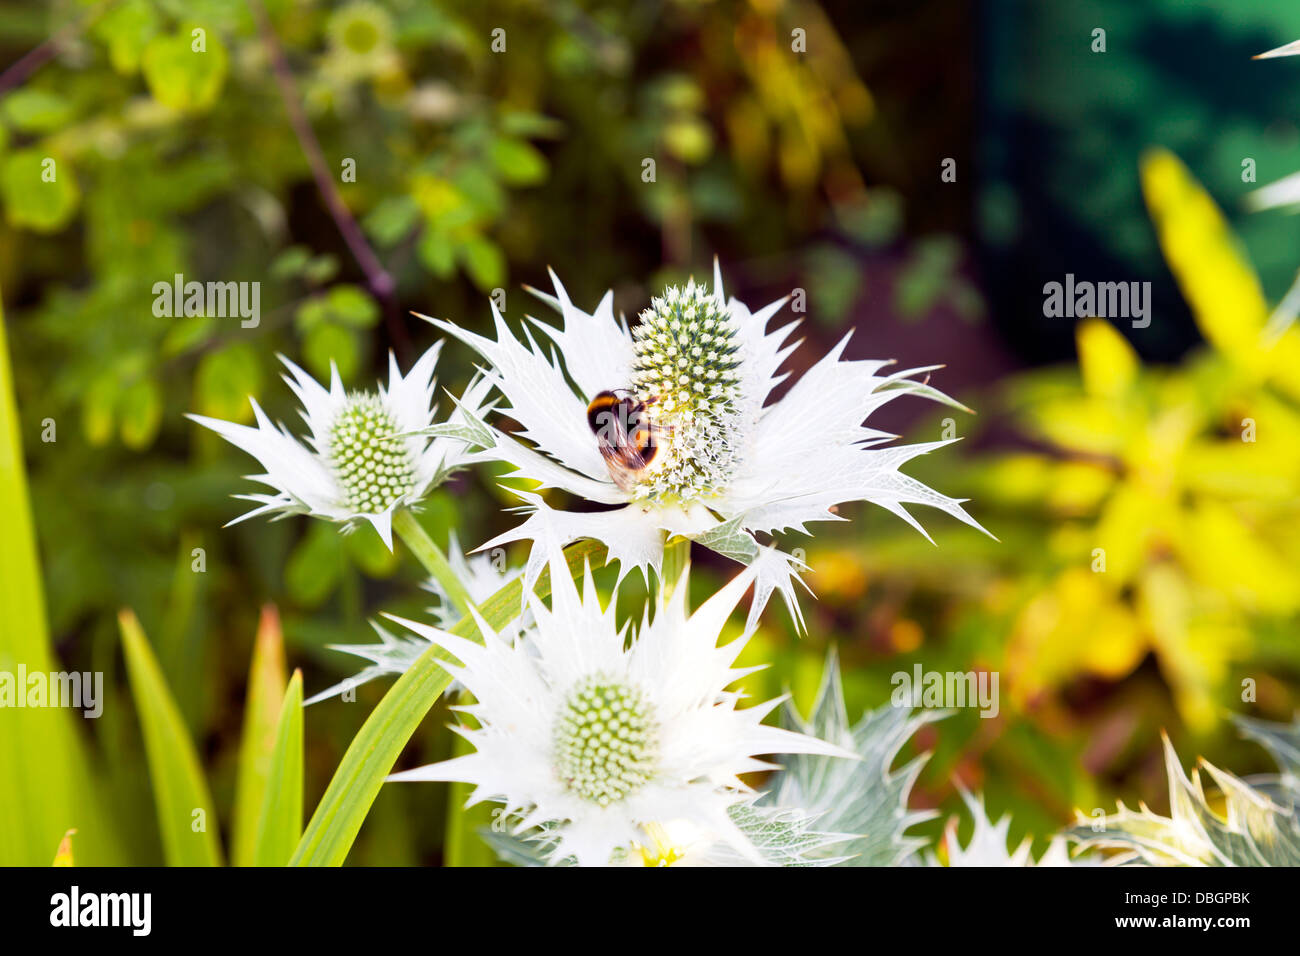 Typical English garden plants flowers Eryngium giganteum   Miss Wilmott's Ghost or Giant Sea Holly pollinated - Stock Image